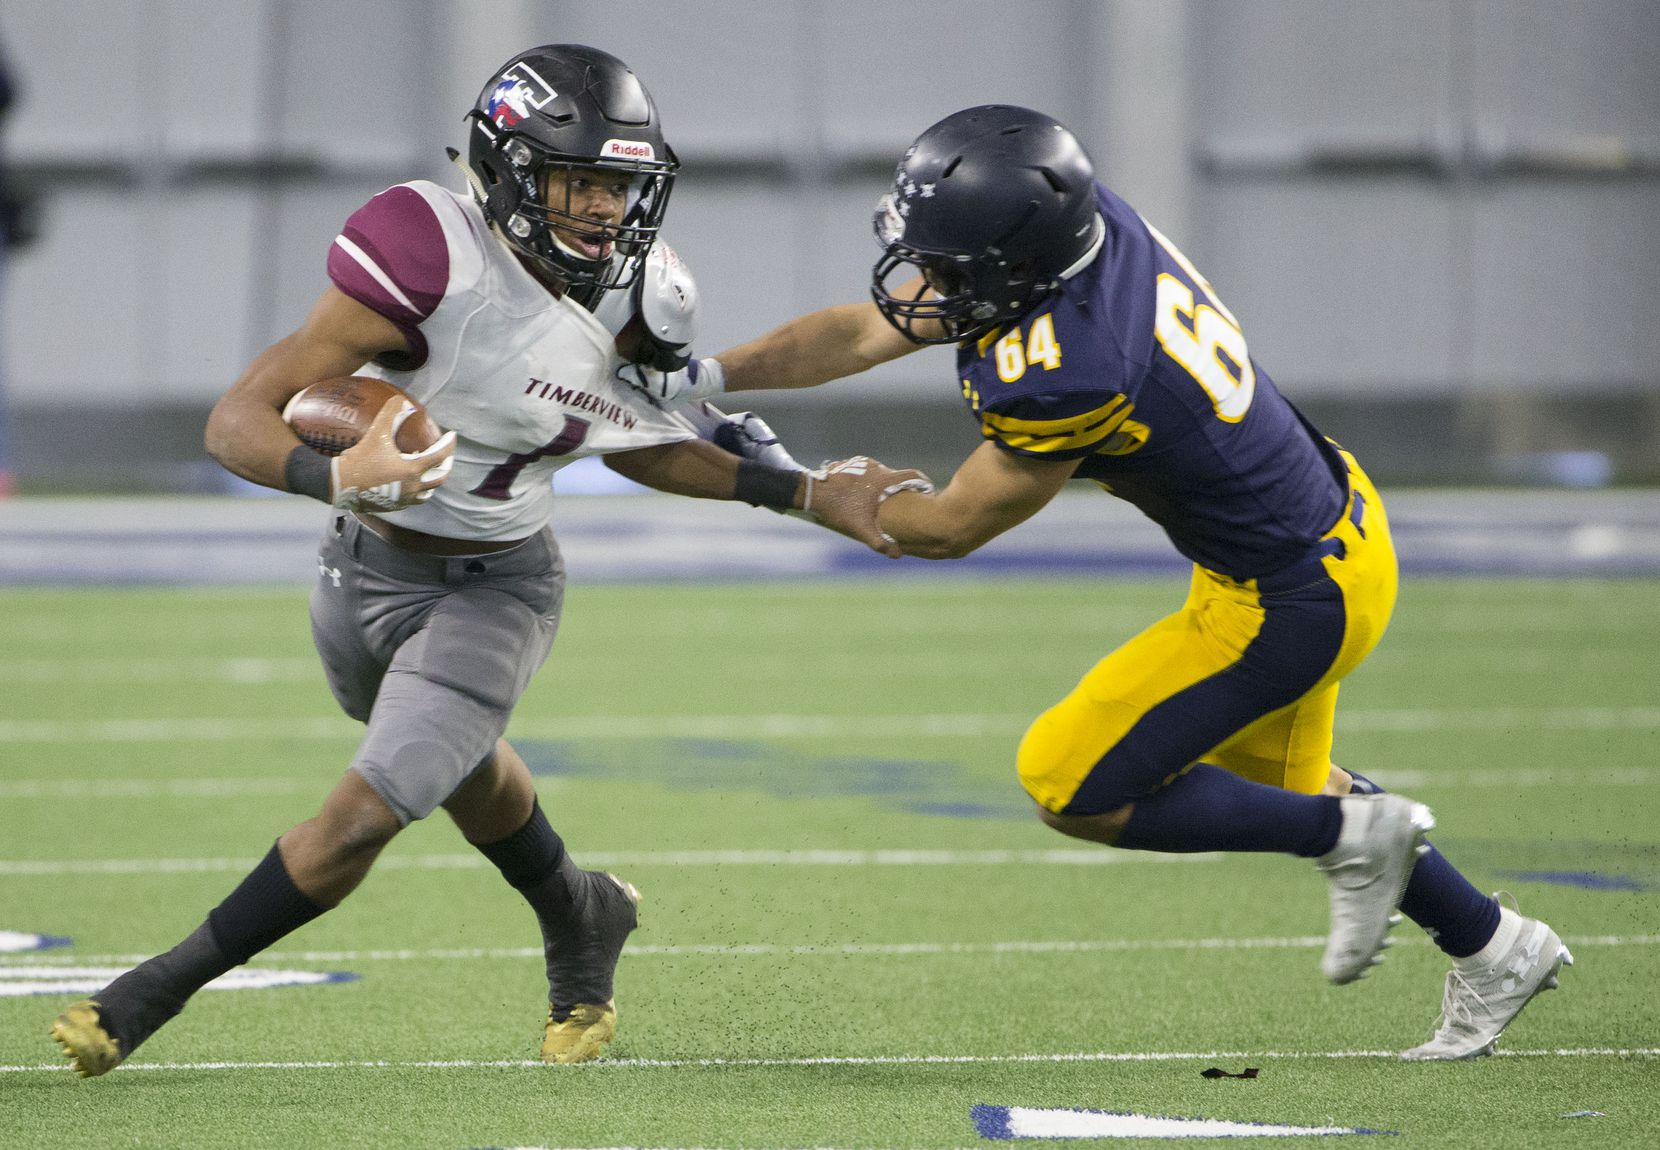 Timberview running back Stacy Sneed (1) tries to break free from Highland Park defensive back John Beecherl (64) during a high school football game at Ford Center at The Star in Frisco, Texas on Saturday, December 1, 2018. The Highland Park Fighting Scots were beating the Mansfield Timberview Wolves 38 to 0 at the end of the first half. (Daniel Carde/The Dallas Morning News)